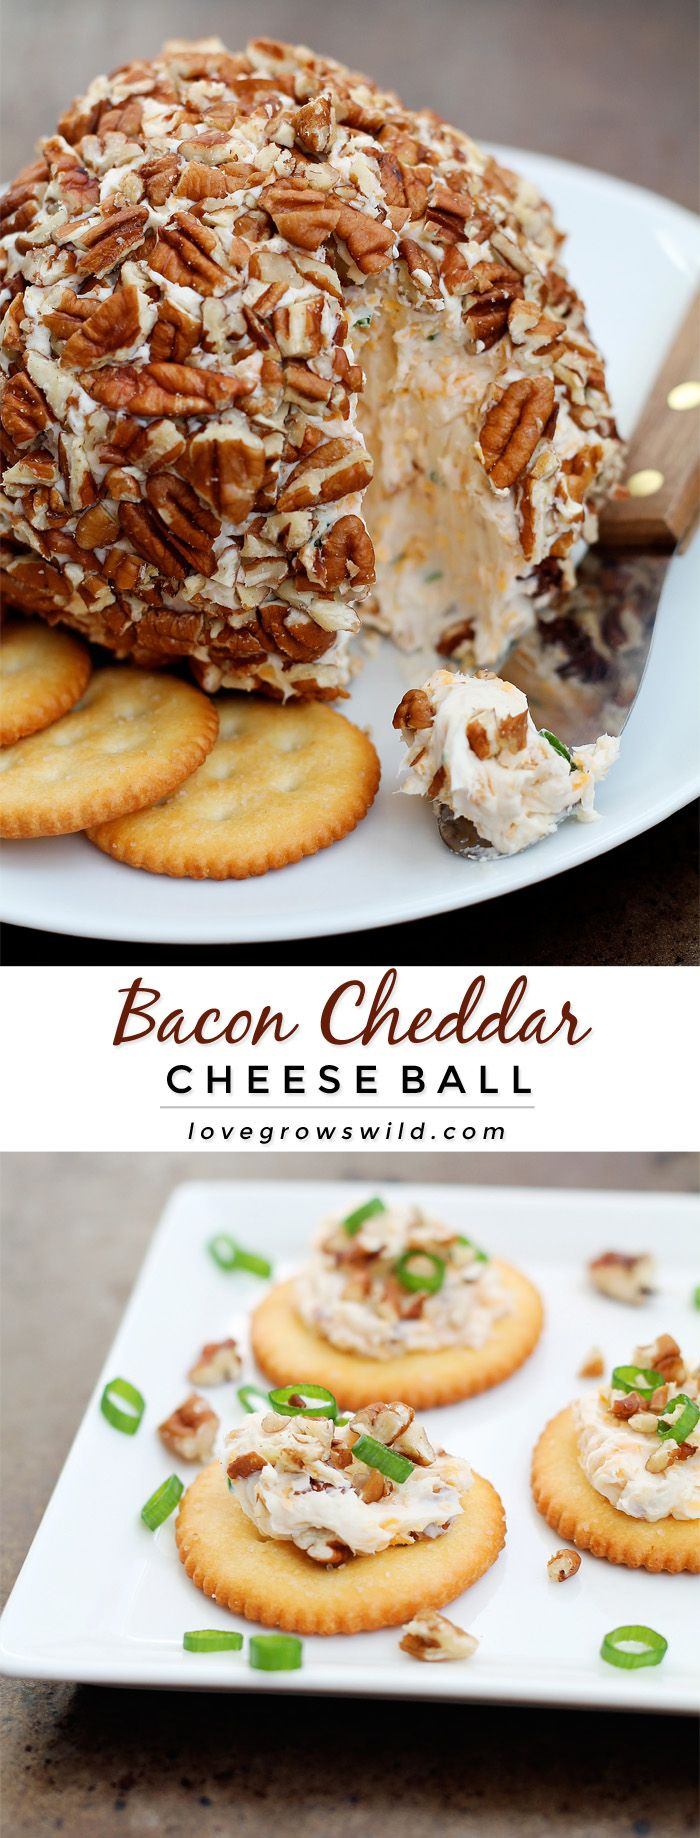 This Bacon Cheddar Cheese Ball is always a party favorite!  Super creamy, loaded with bacon, and wrapped in pecans for a delicious and easy appetizer! | LoveGrowsWild.com